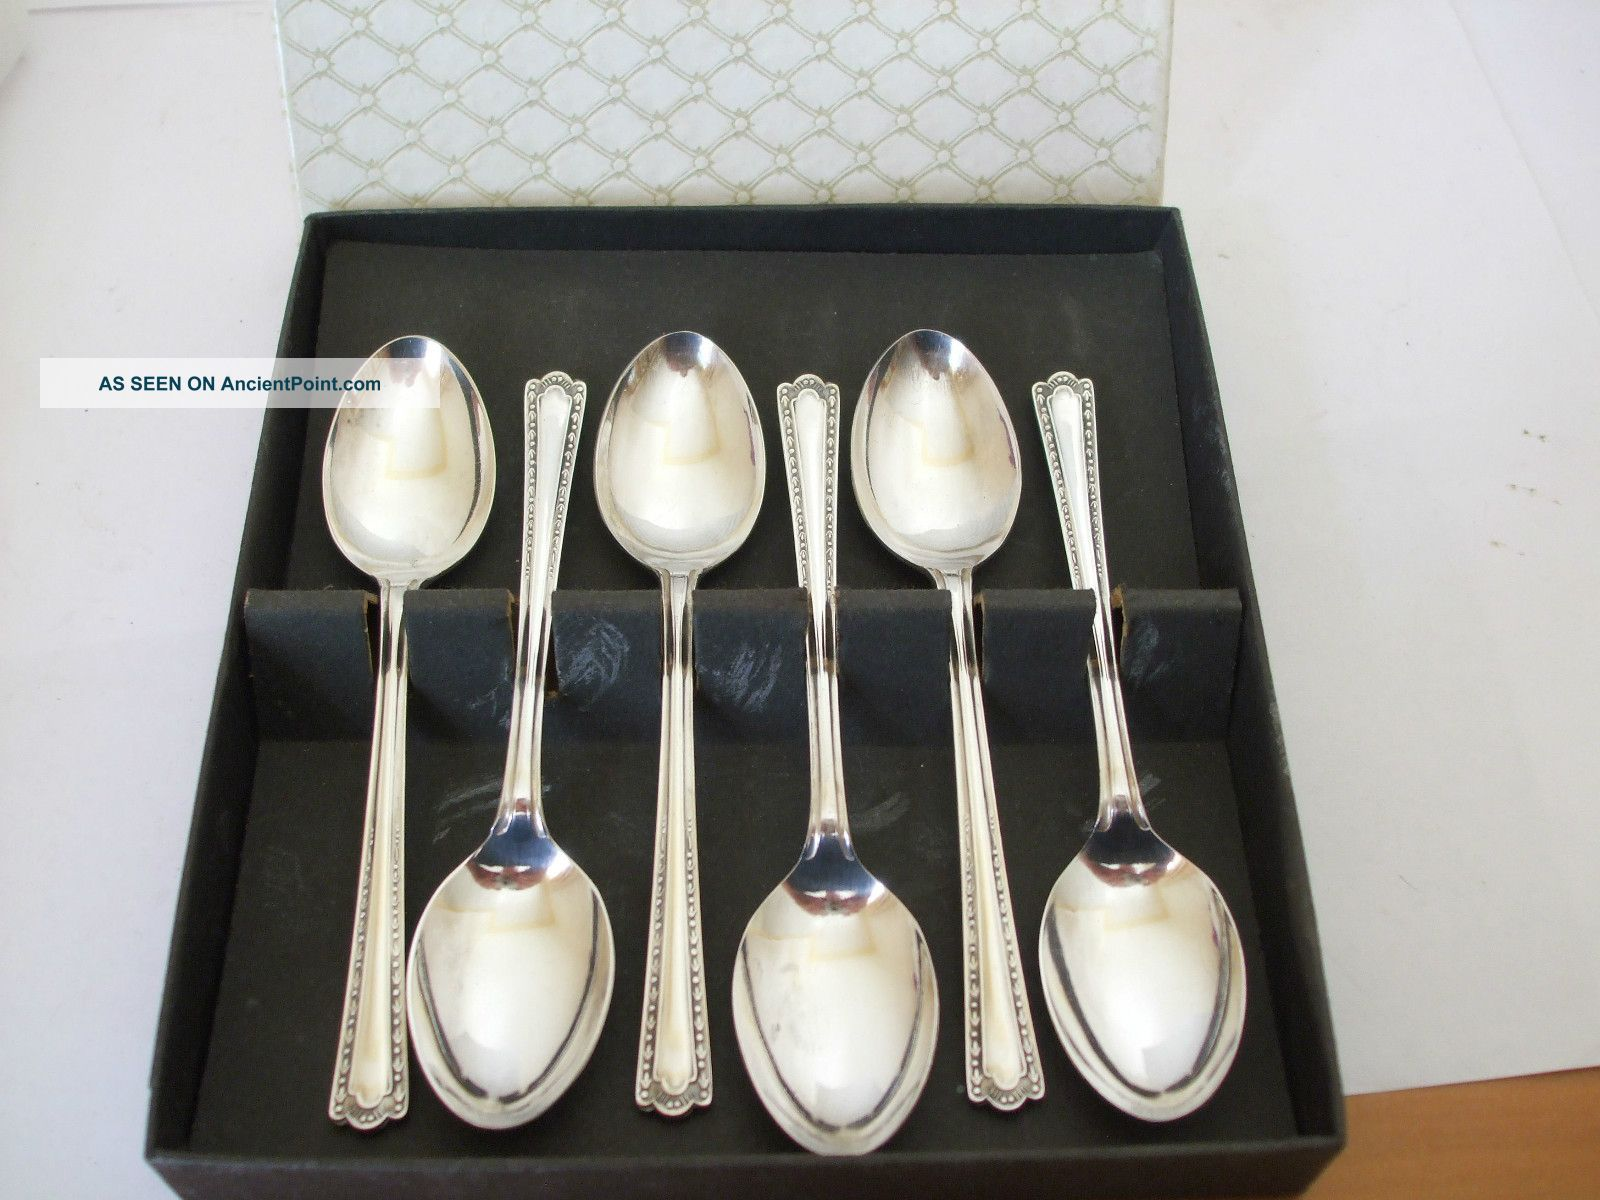 Viintage Boxed 6 Tea Spoons Silver Plate Epns Pretty Pattern Other photo